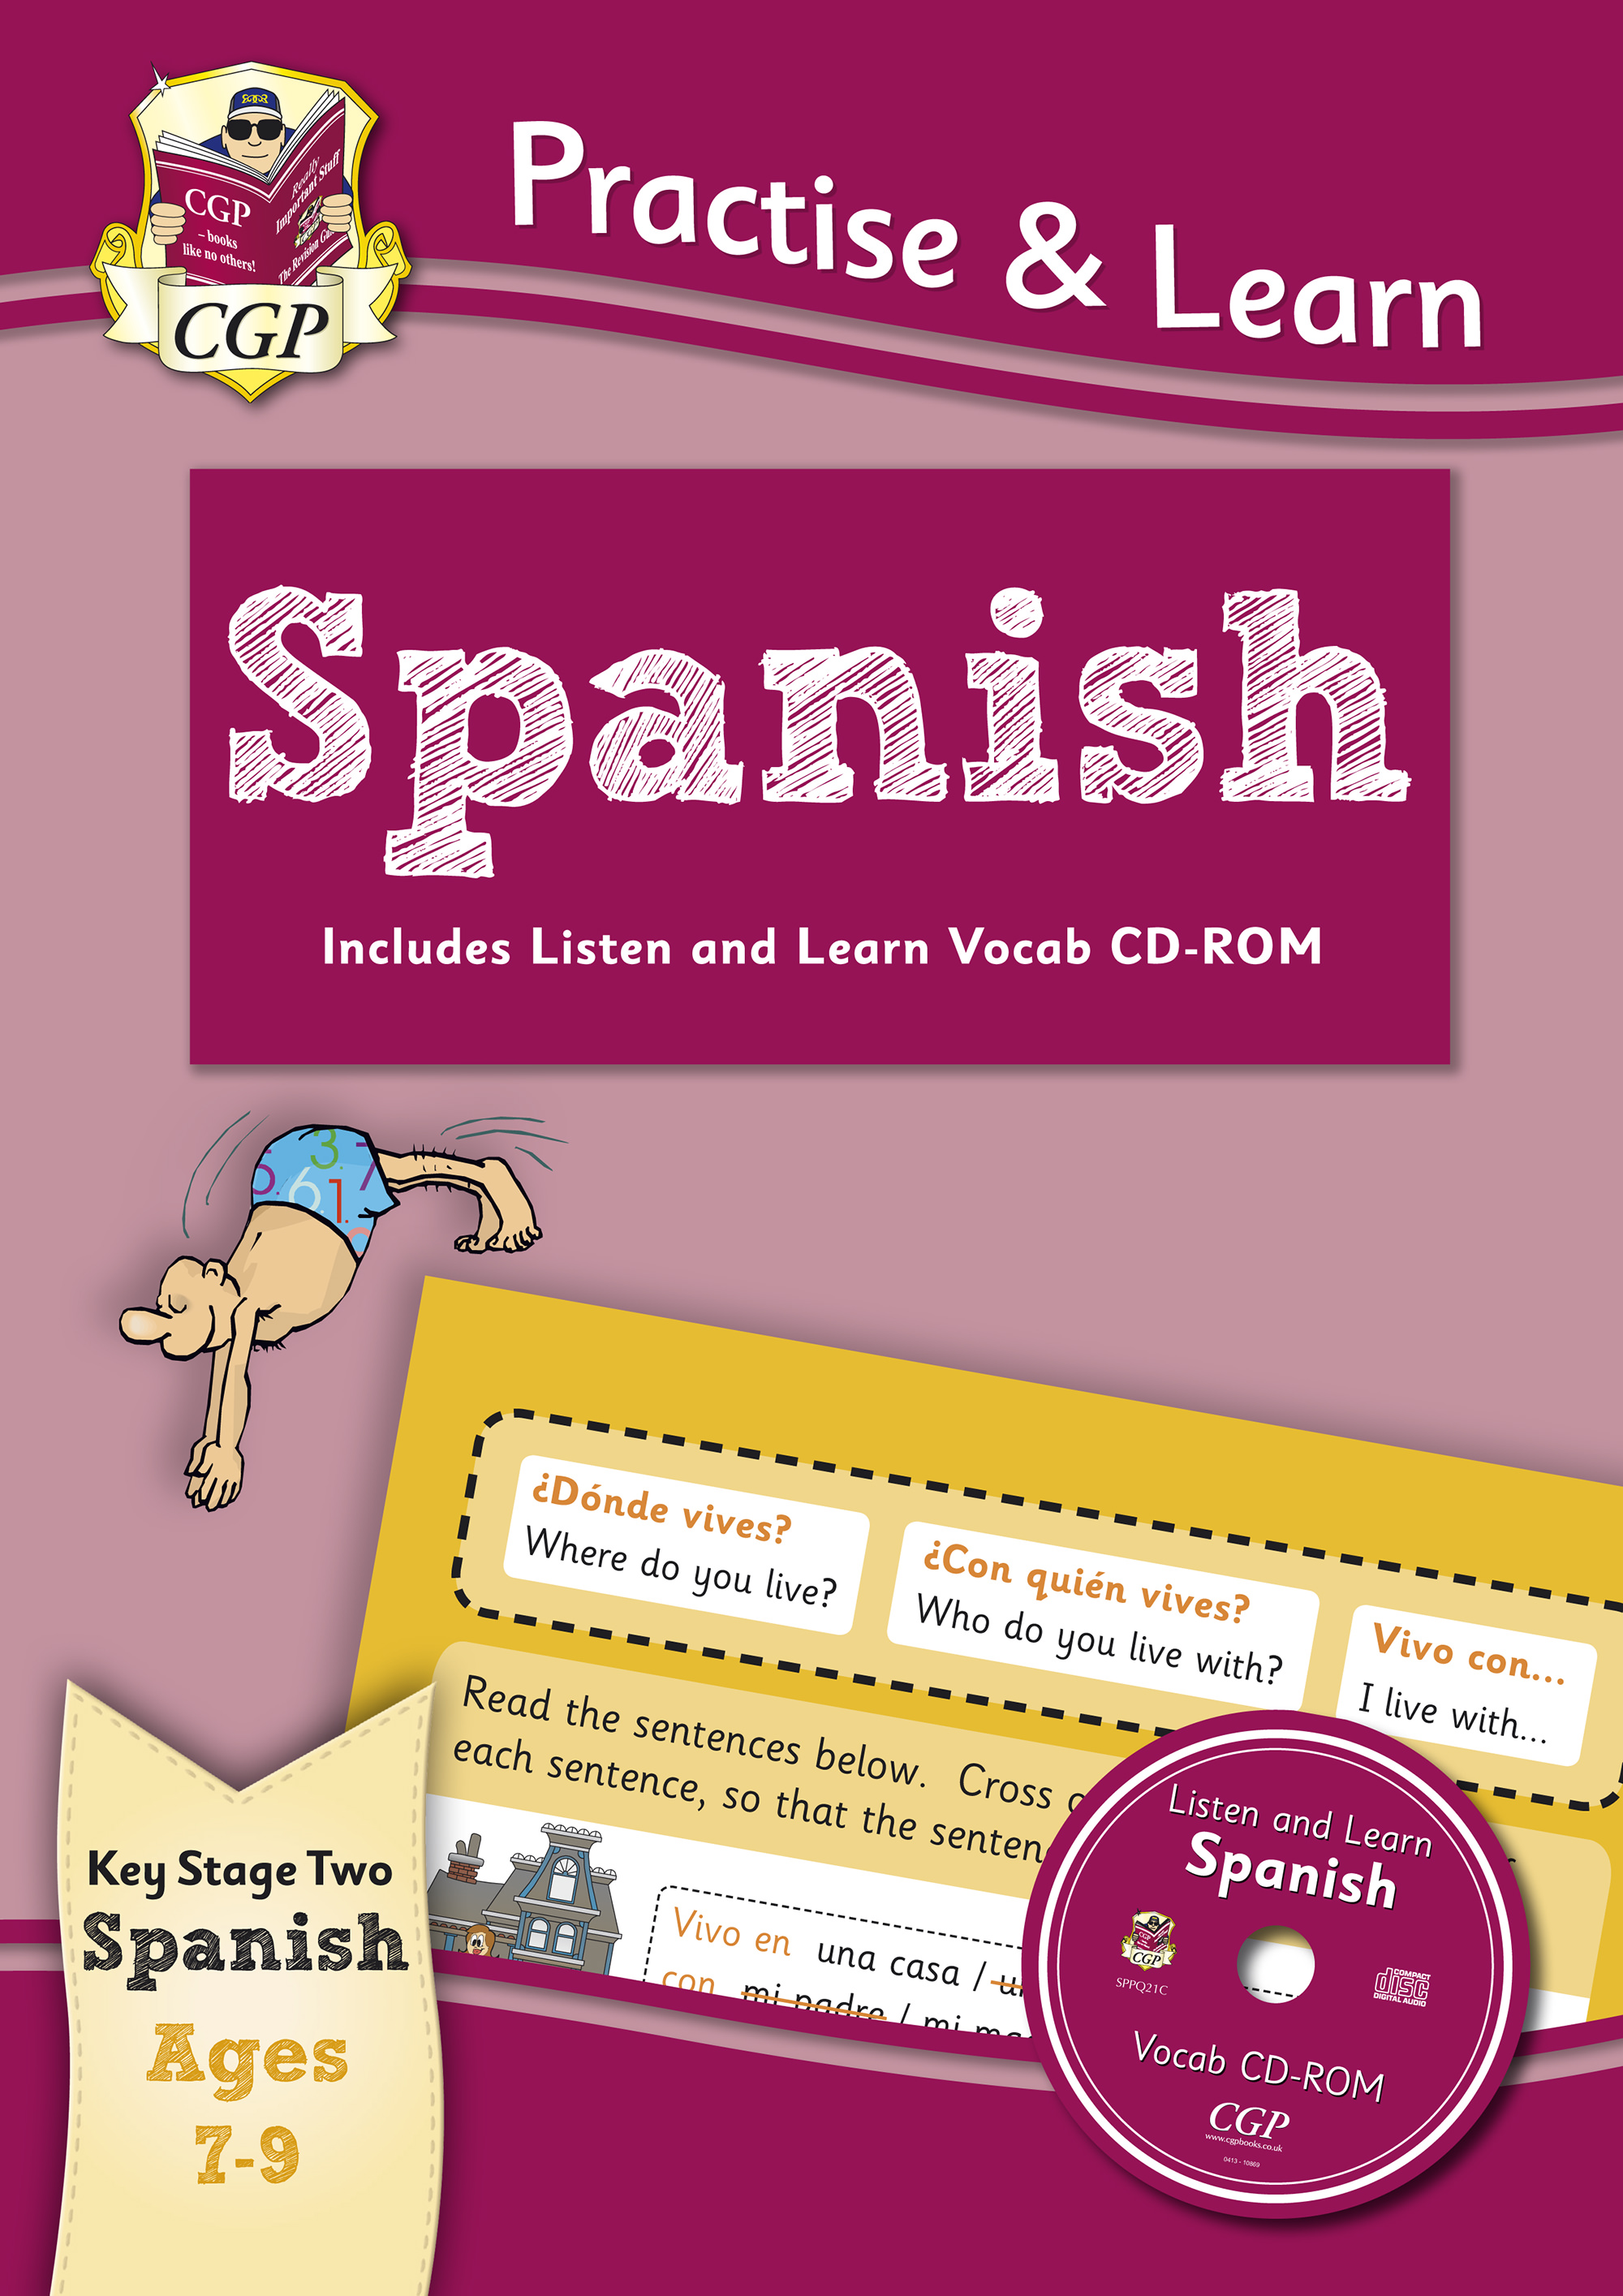 SPP4Q22 - New Curriculum Practise & Learn: Spanish for Ages 7-9 - with vocab CD-ROM